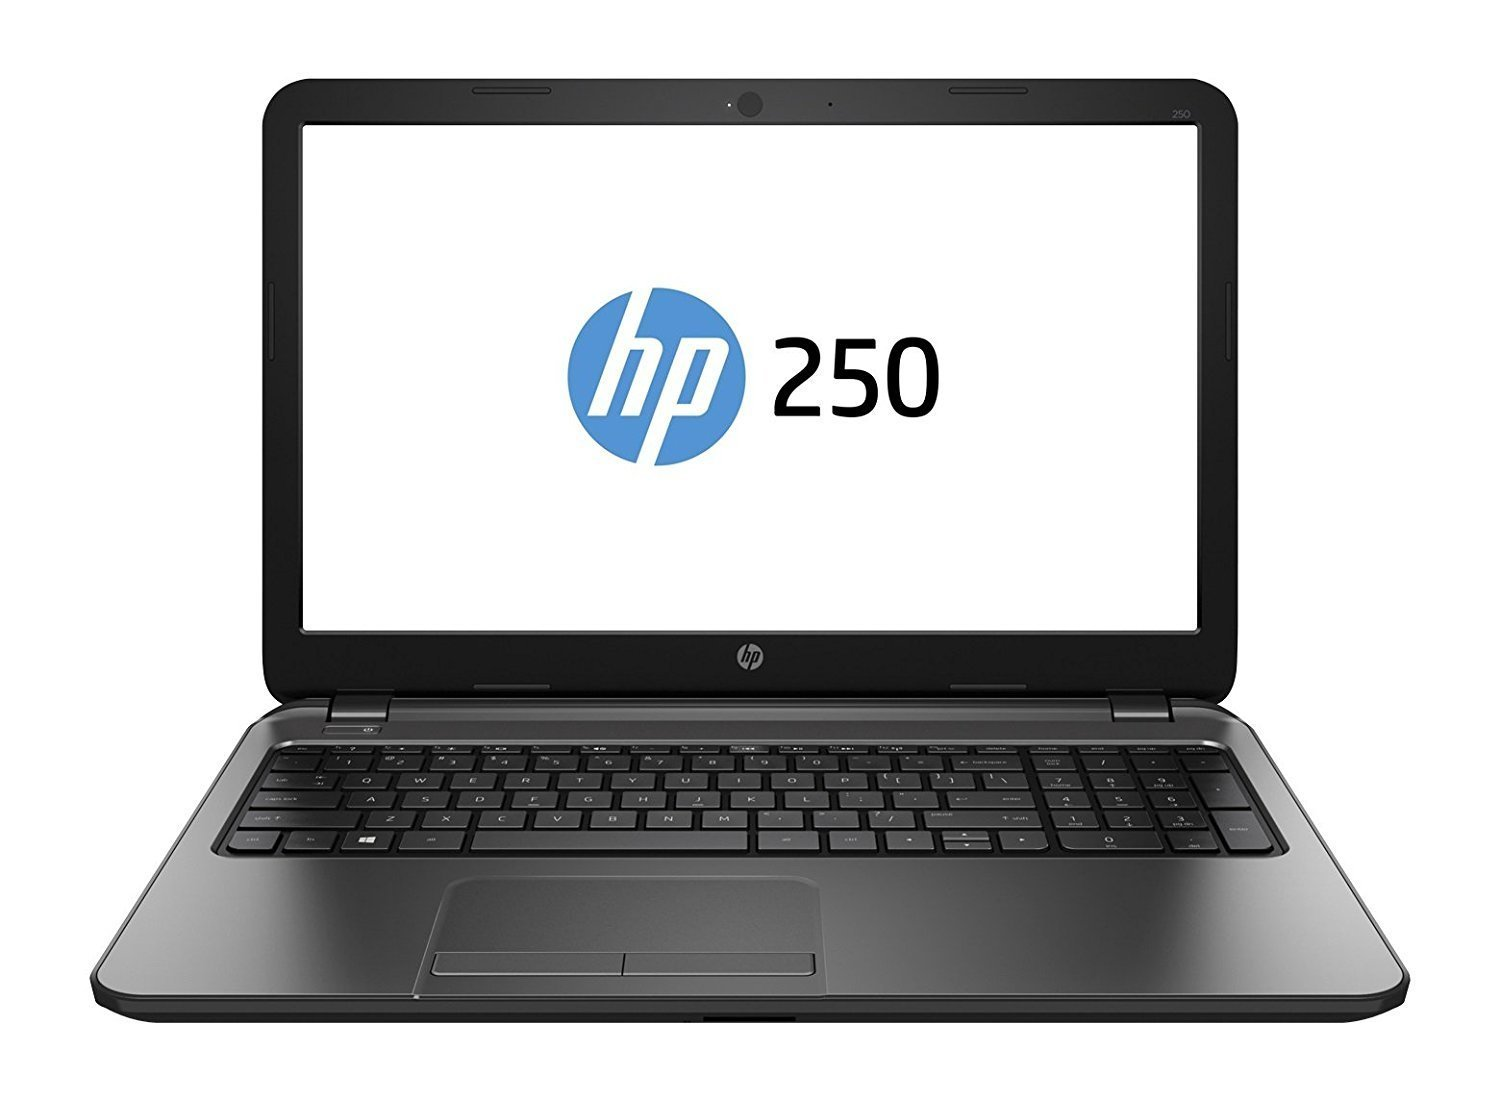 HP 240G5 Laptop